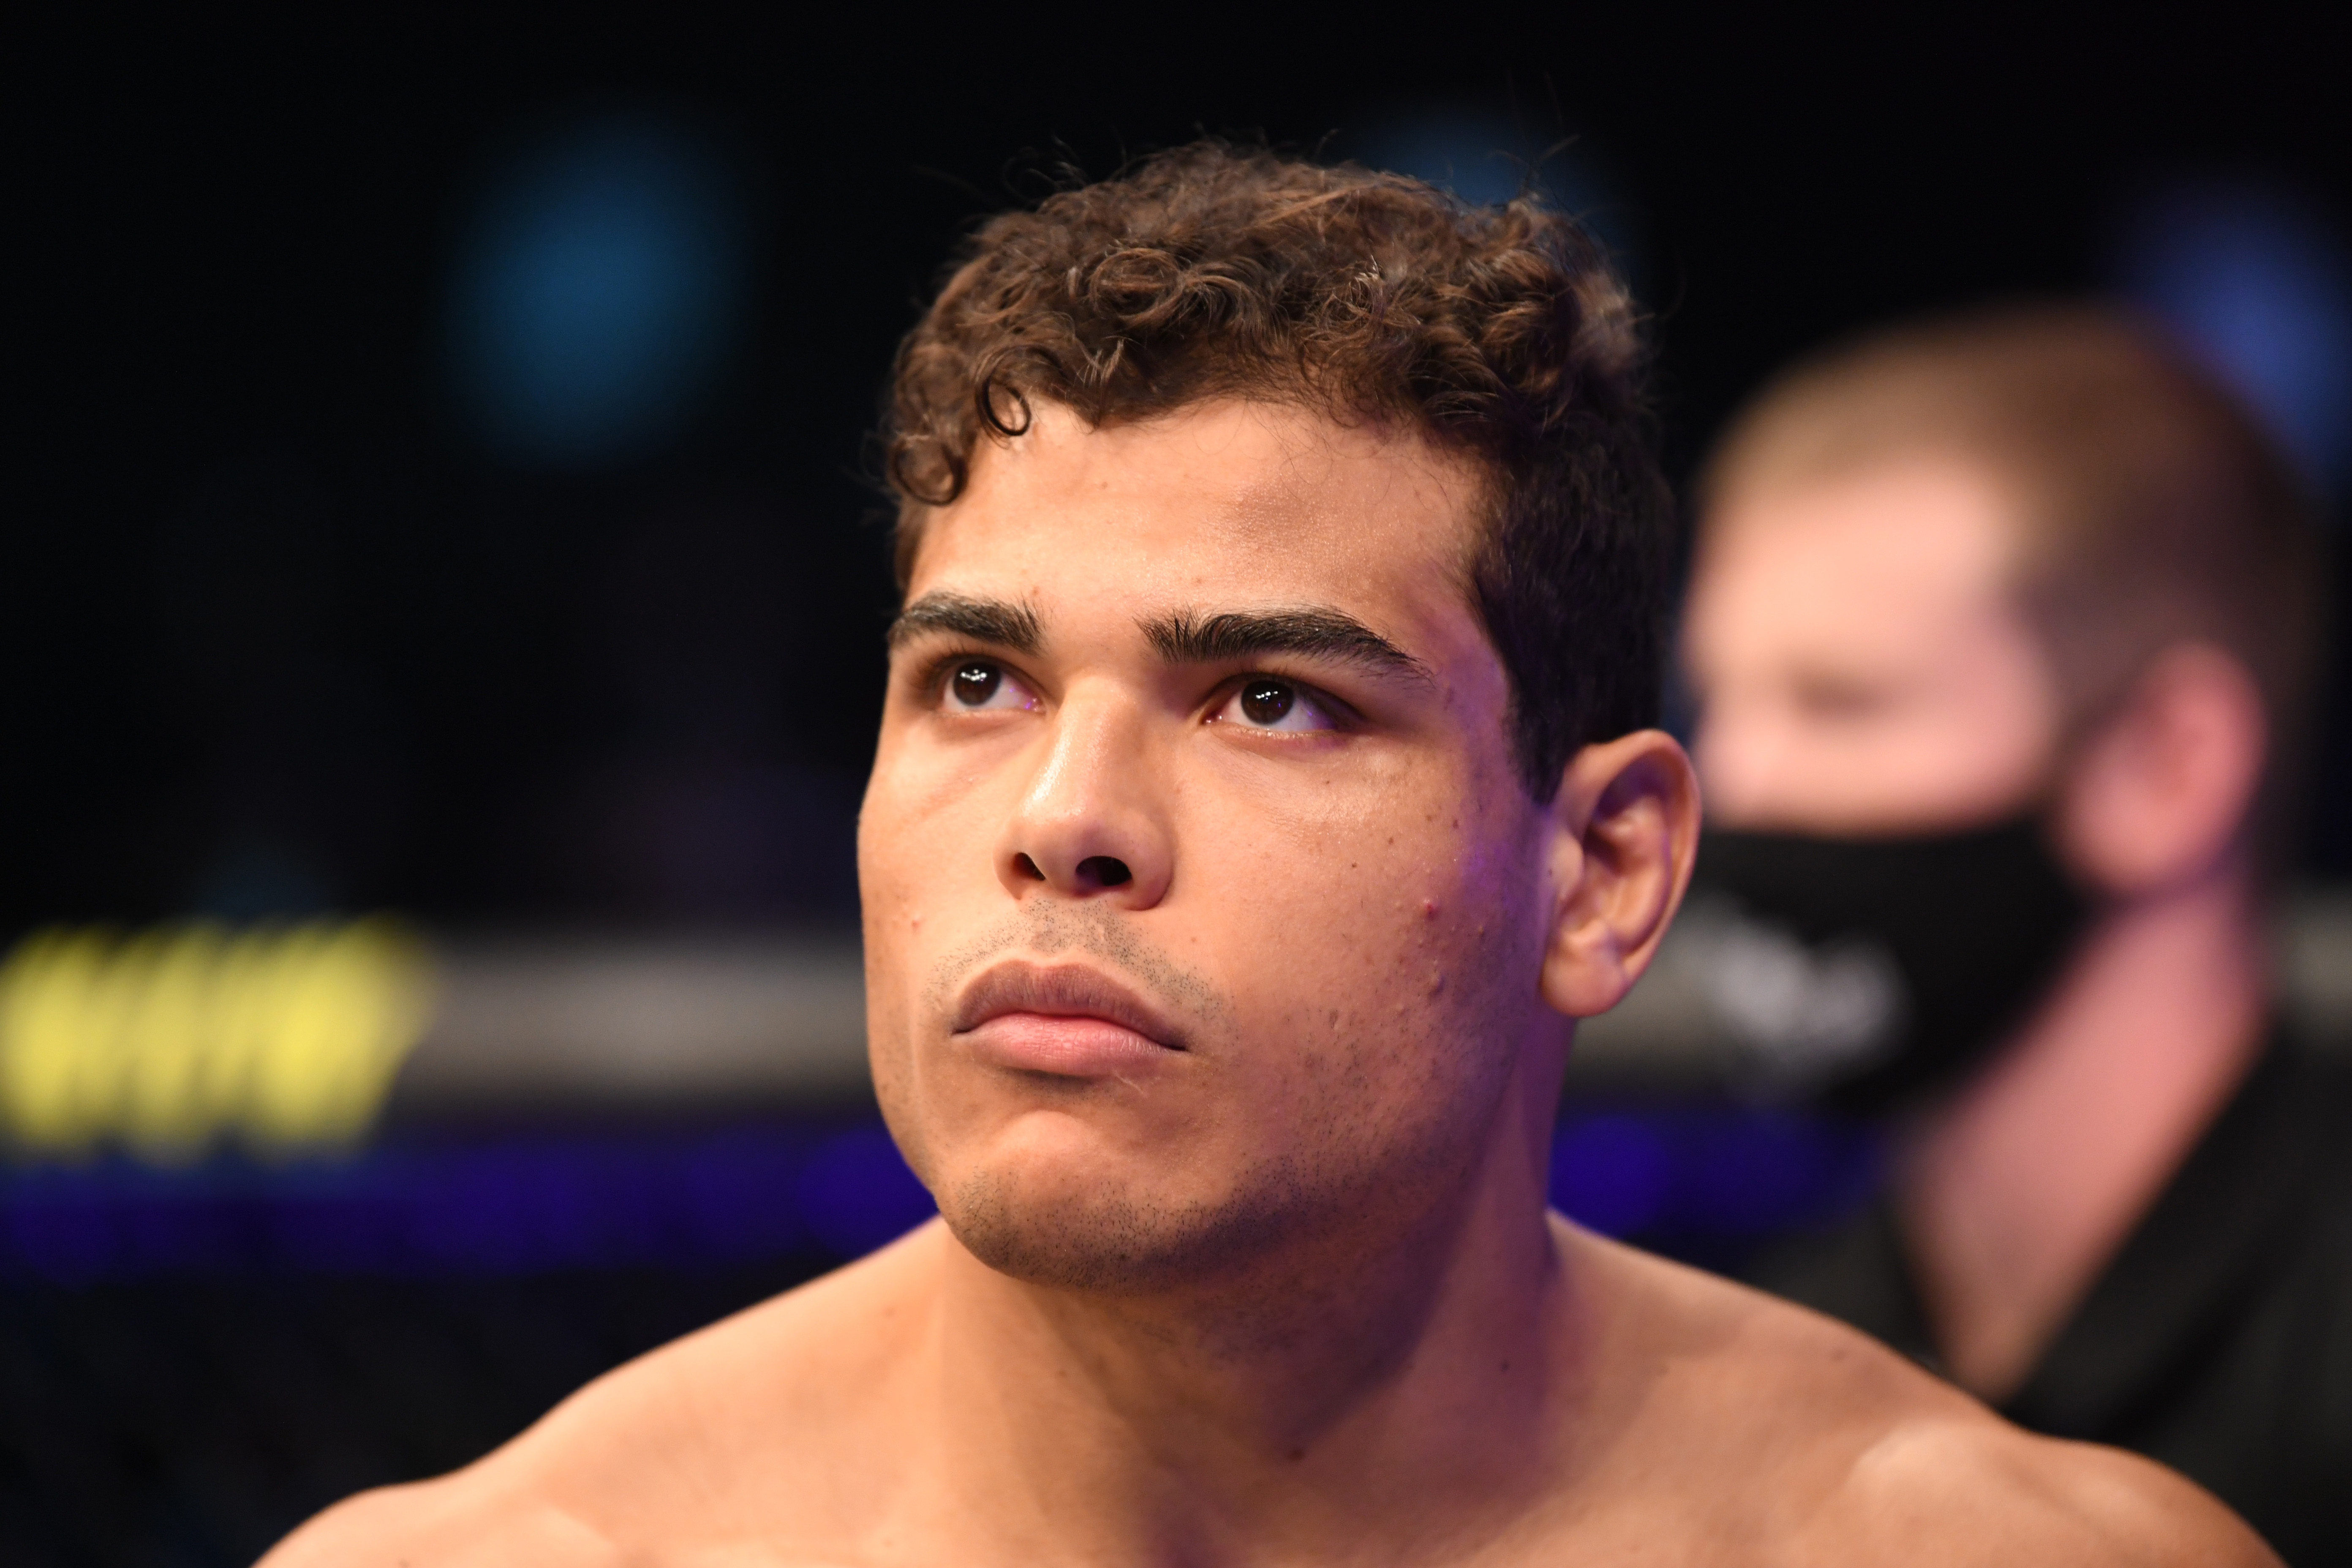 Paulo Costa is the latest UFC fighter to report a positive COVID-19 test